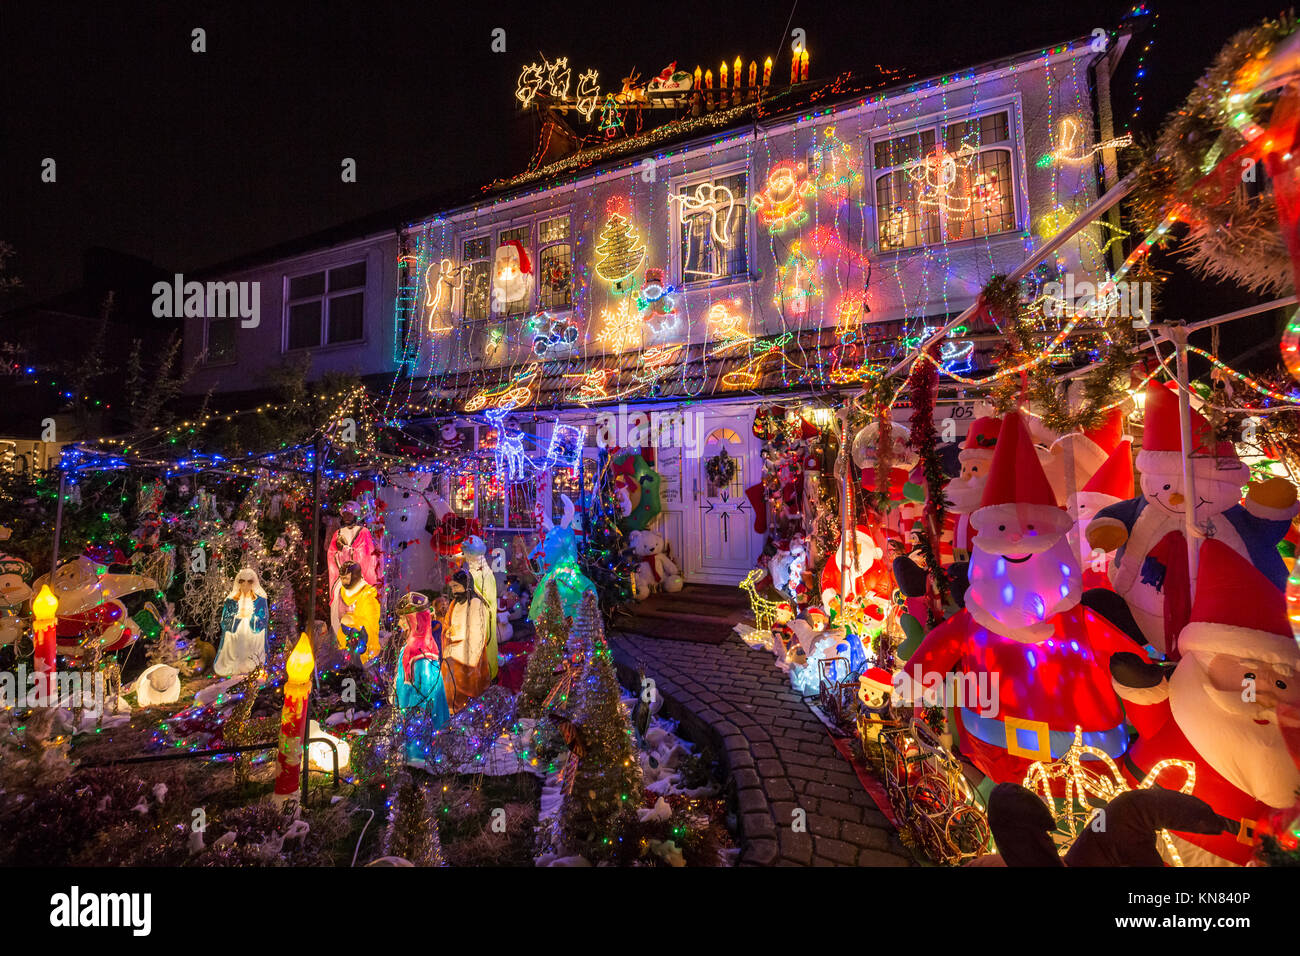 10th dec 2017 massive christmas house lights display in south